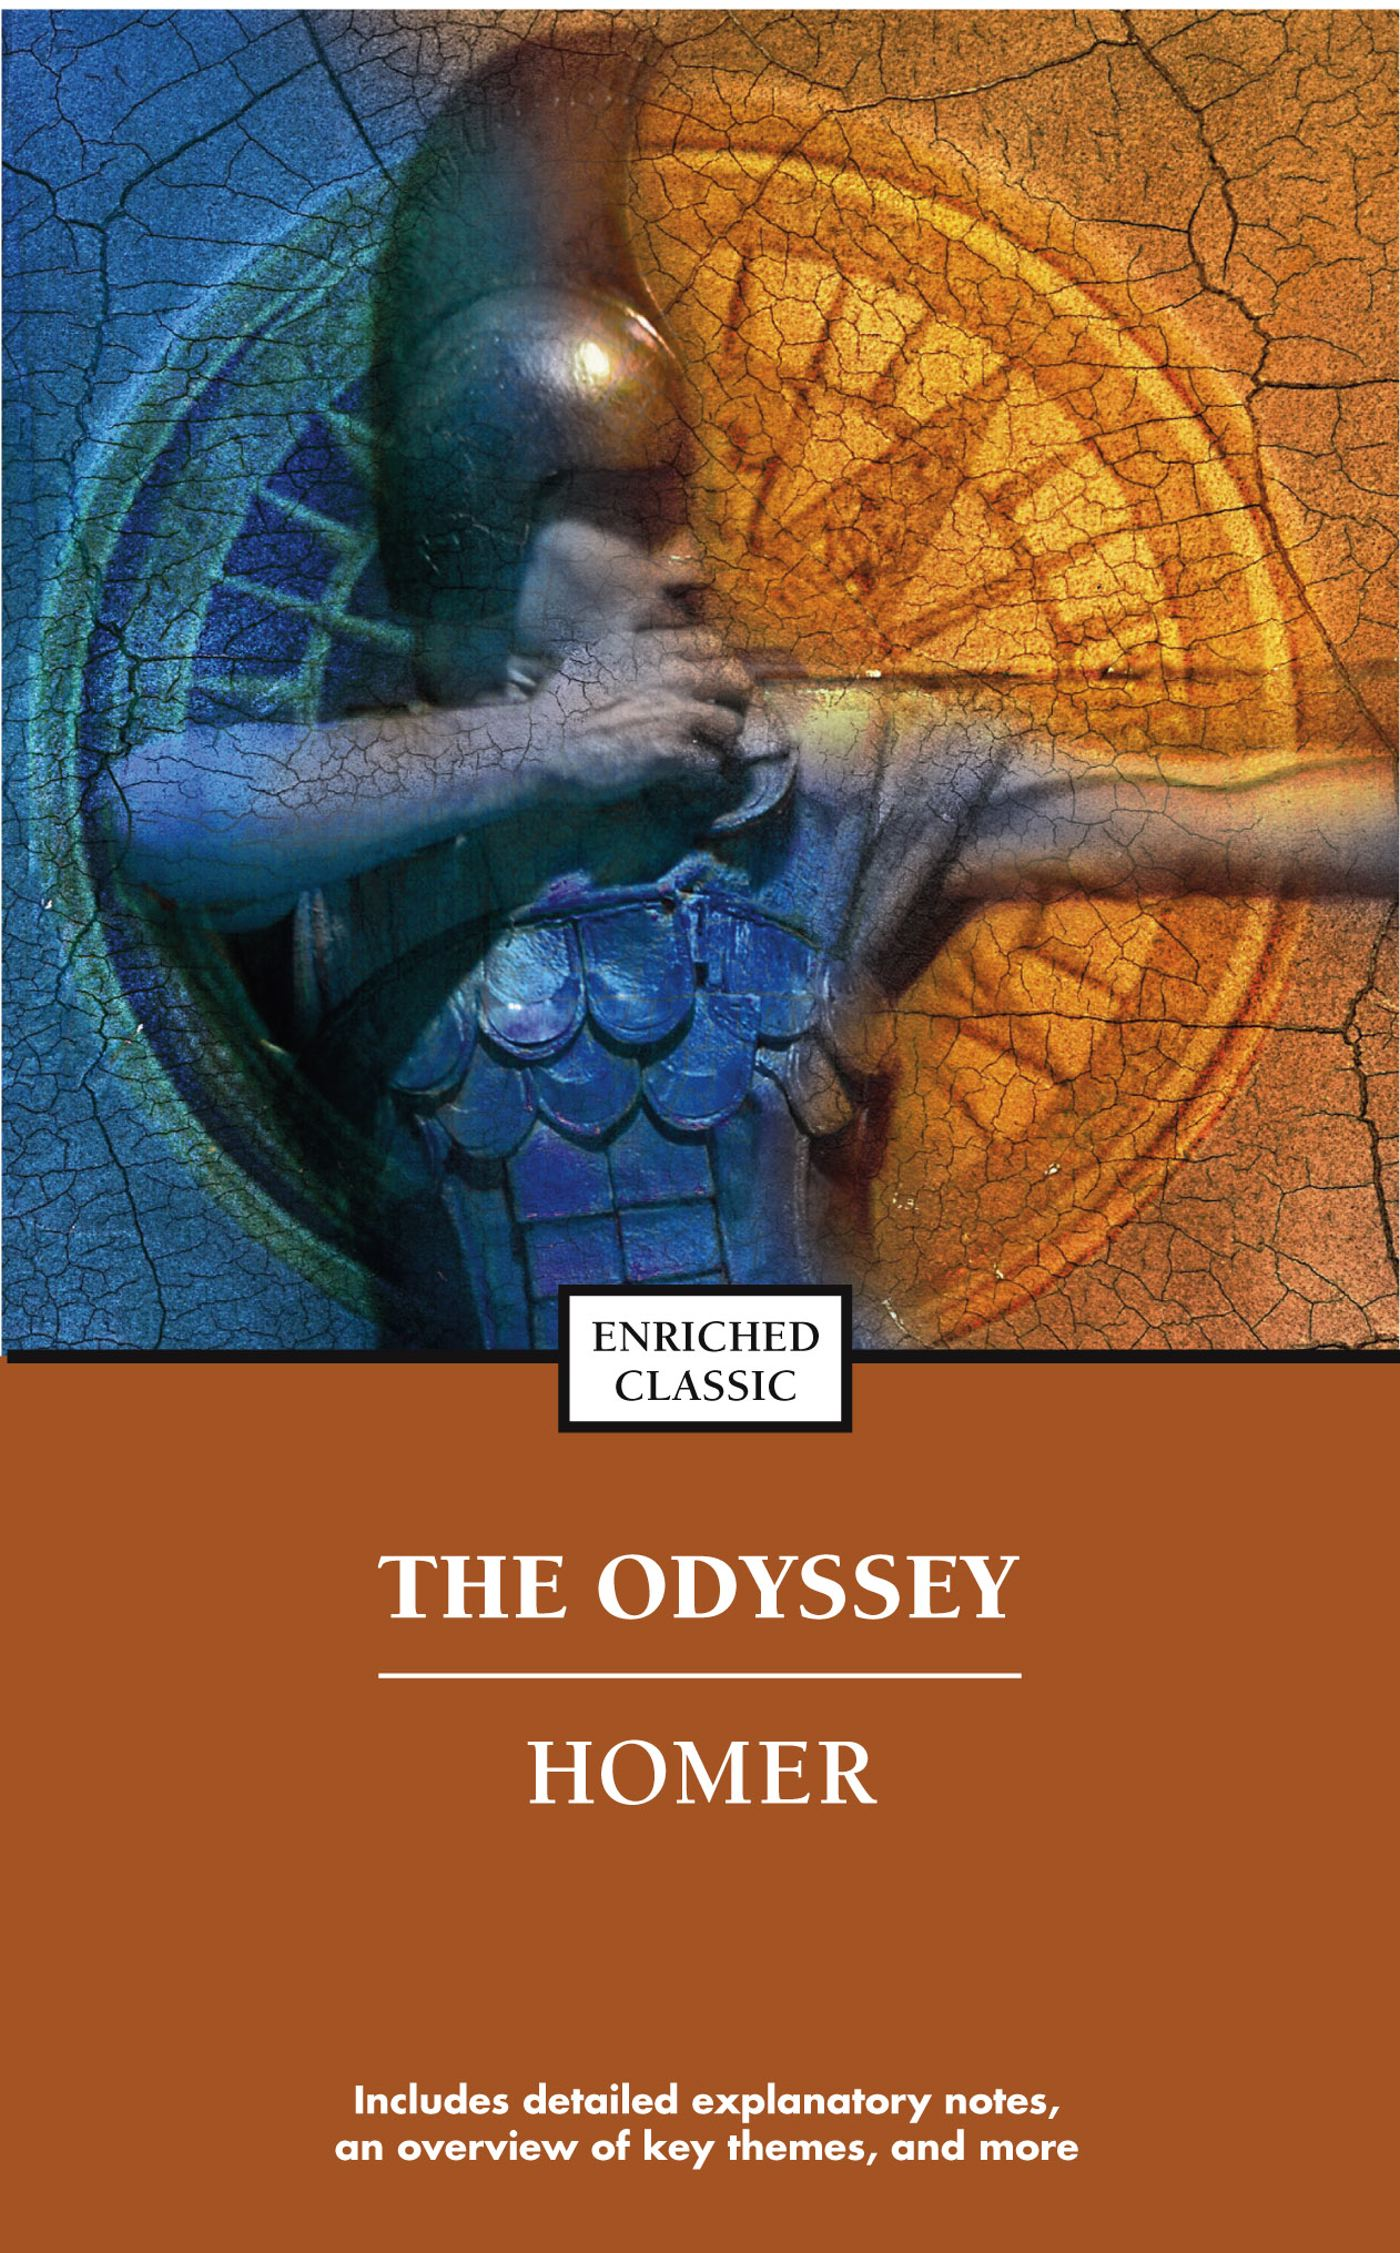 a literary analysis of eurymakos in the odyssey by homer Start studying the odyssey learn vocabulary, terms, and more with flashcards, games, and other study tools.